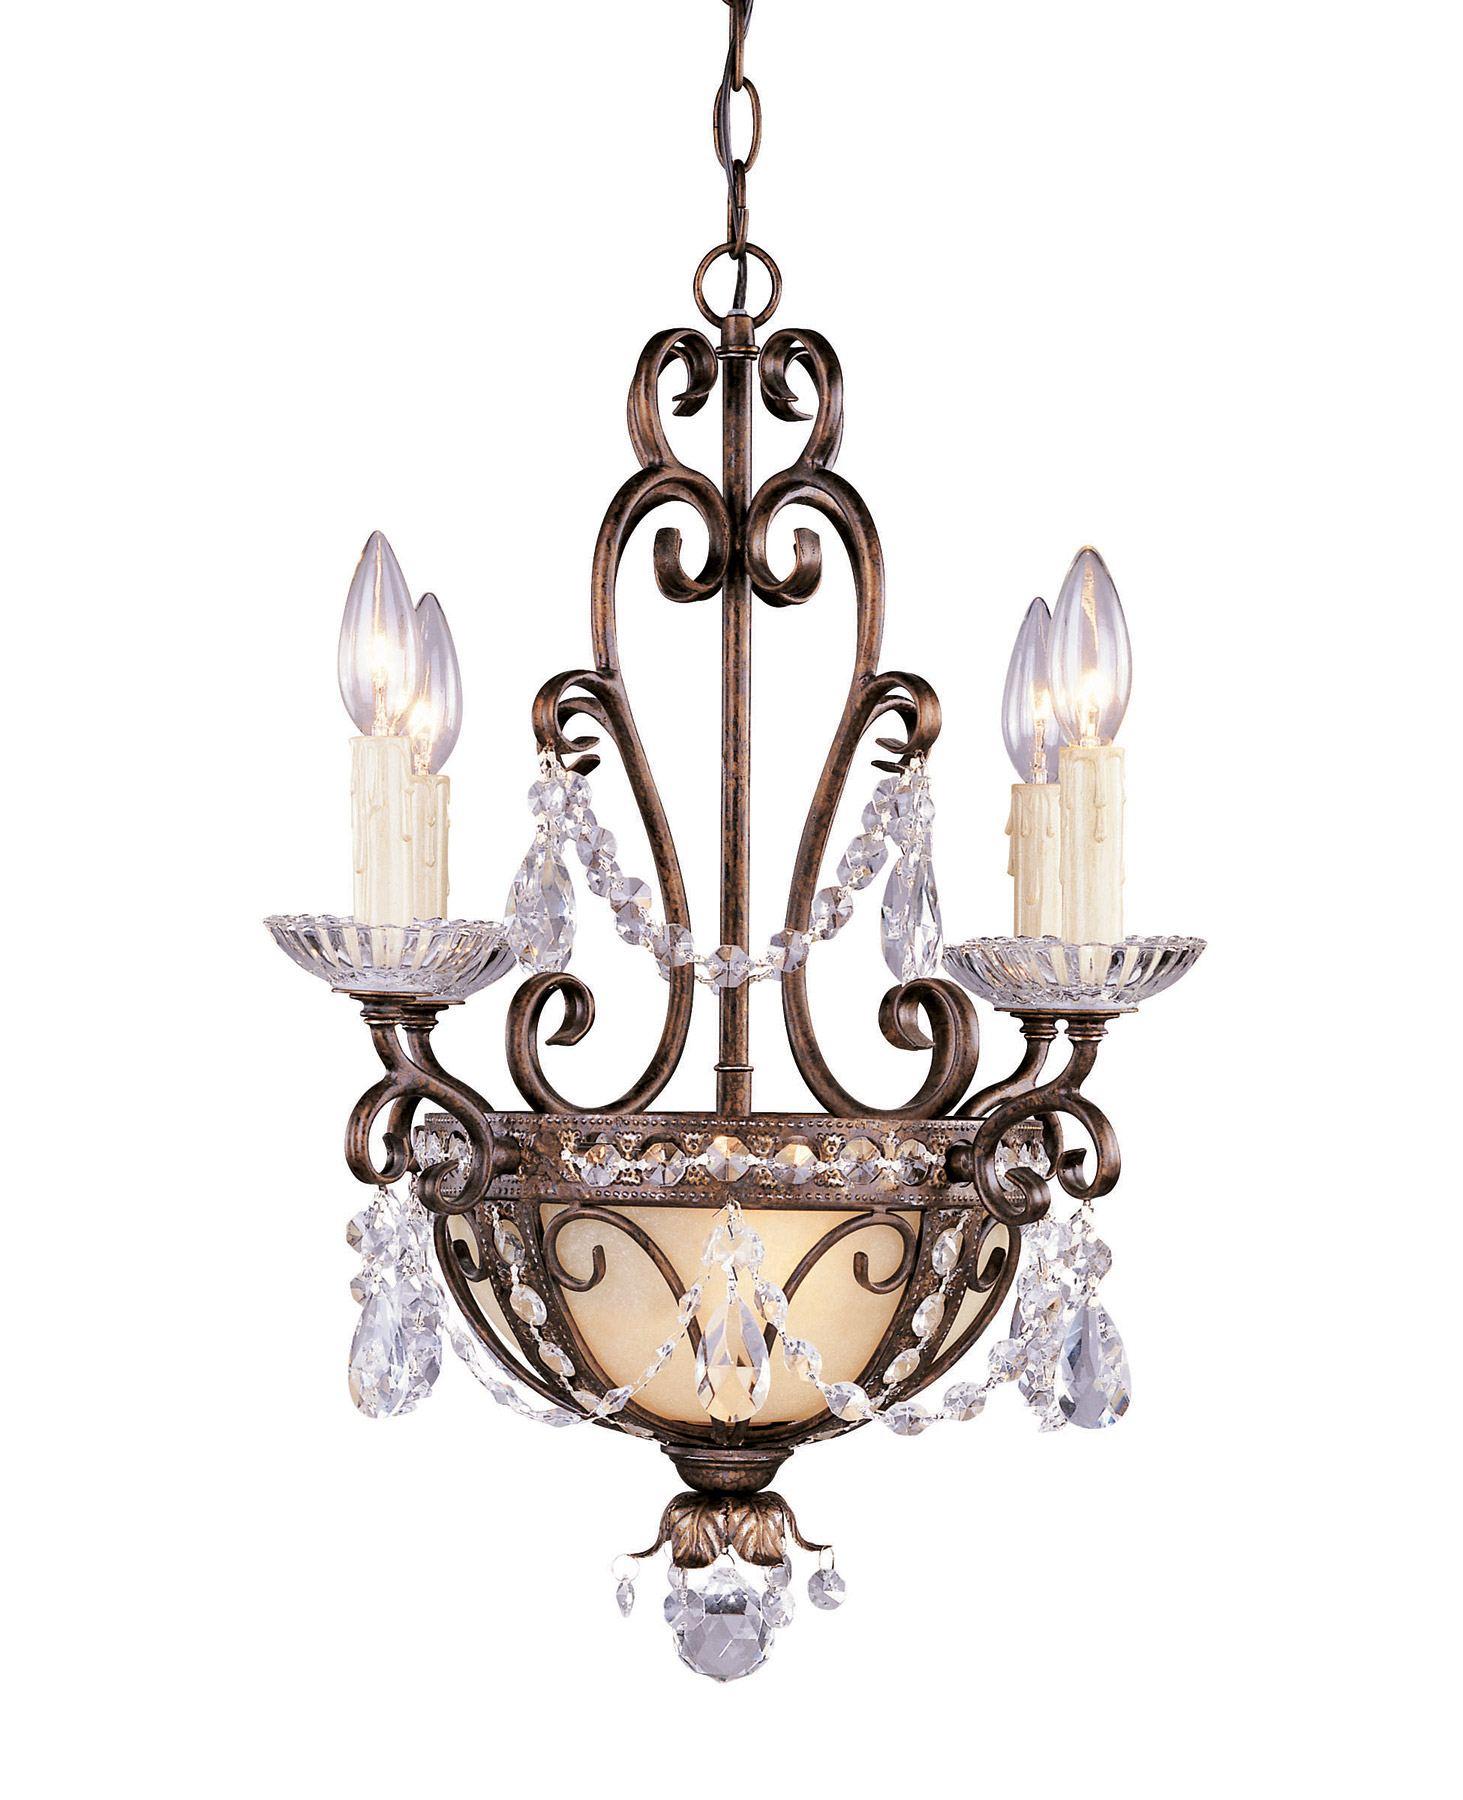 Savoy House 1 4505 4 8 Crystal Mini Chandeliers Six Light